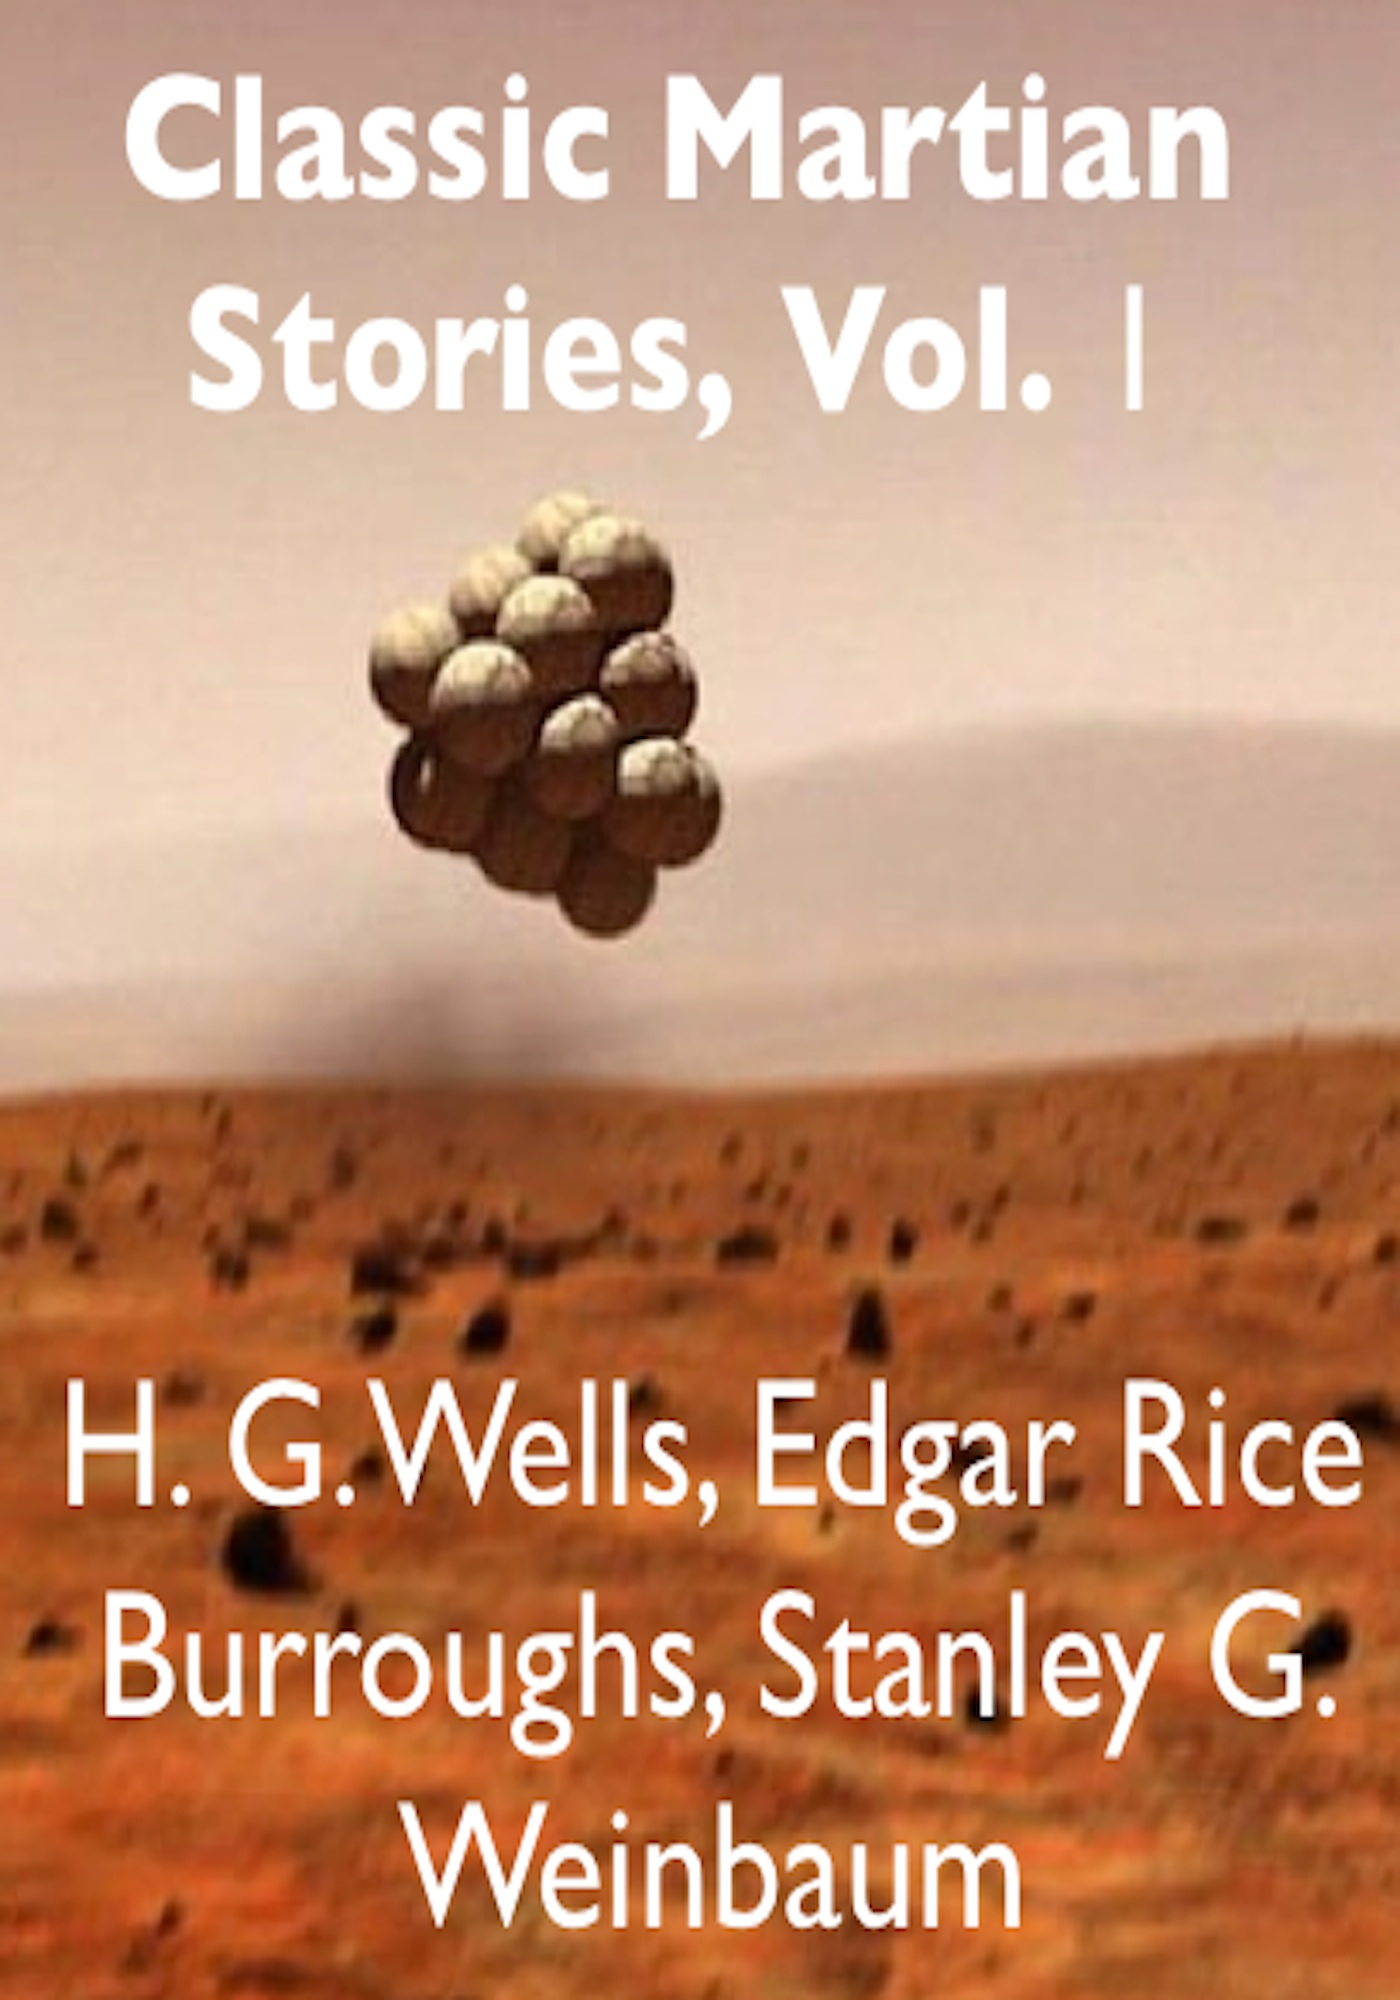 Classic Martian Stories, Vol. 1